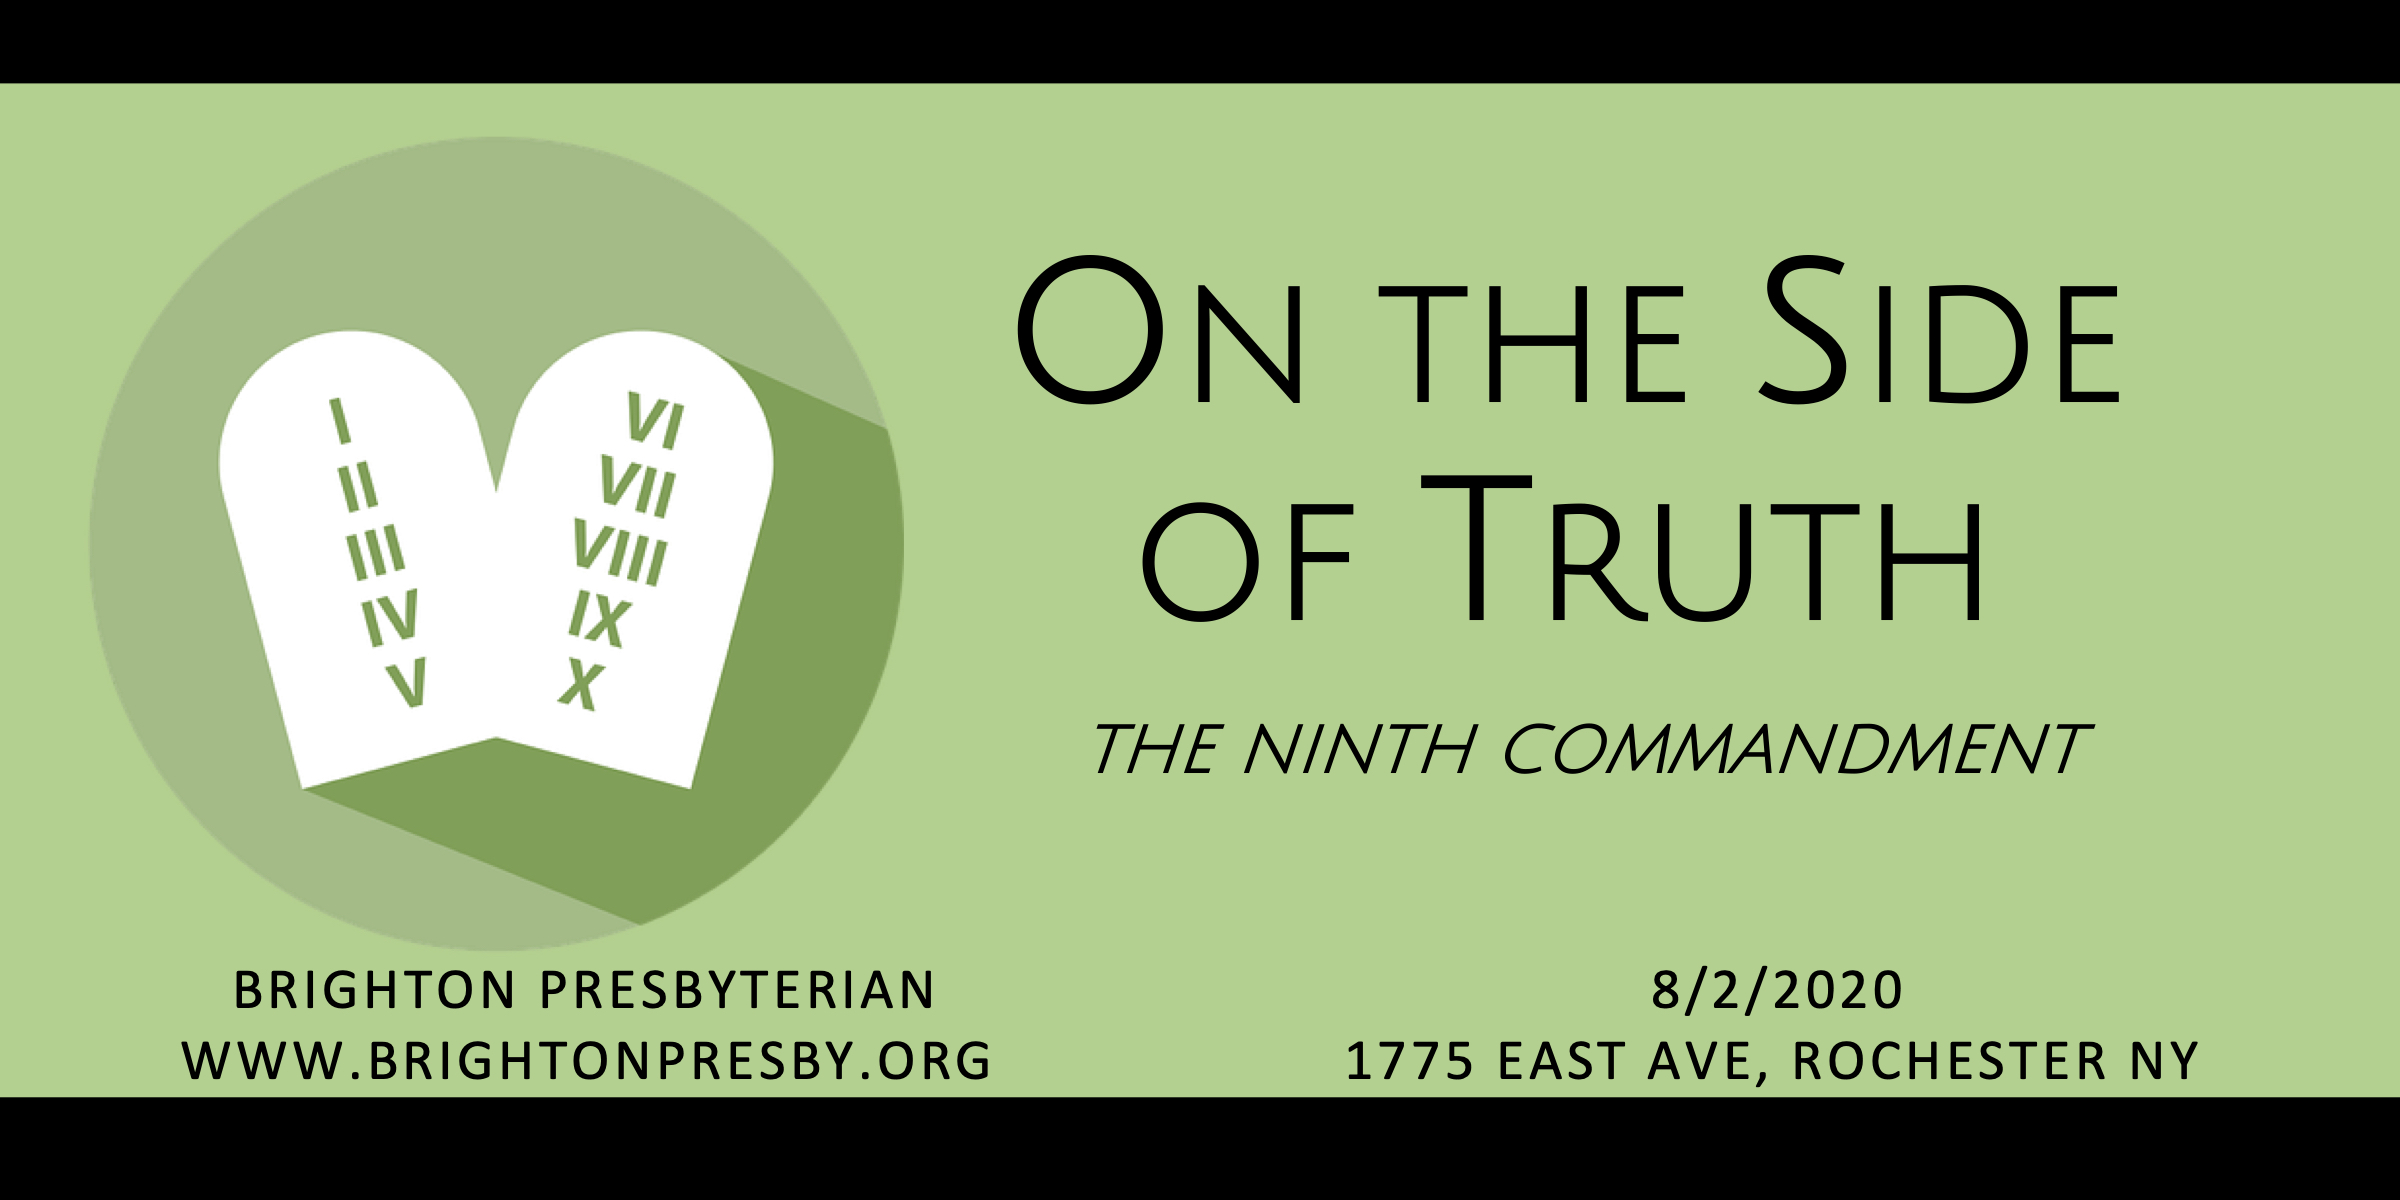 On the Side of Truth: The Ninth Commandment